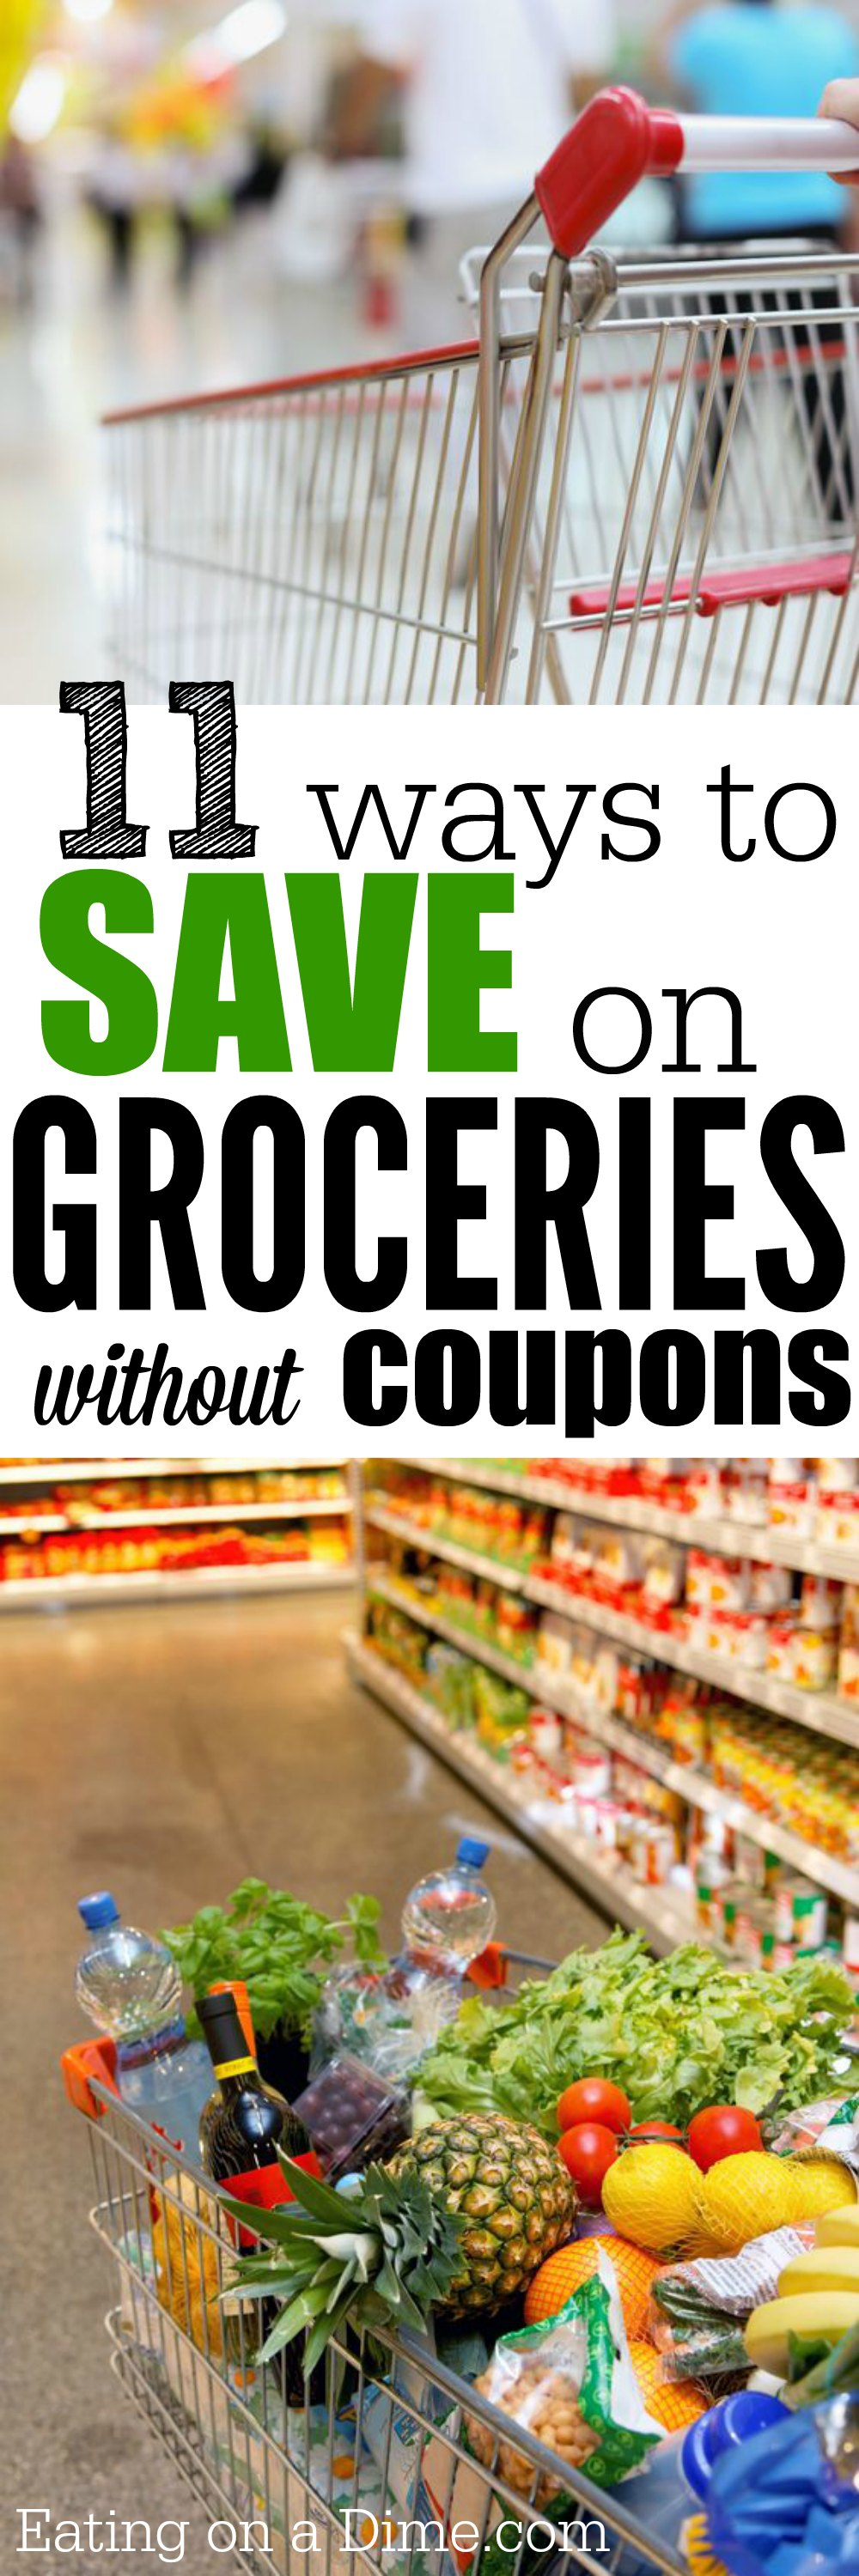 How to Save on Groceries without Coupons 11 ways